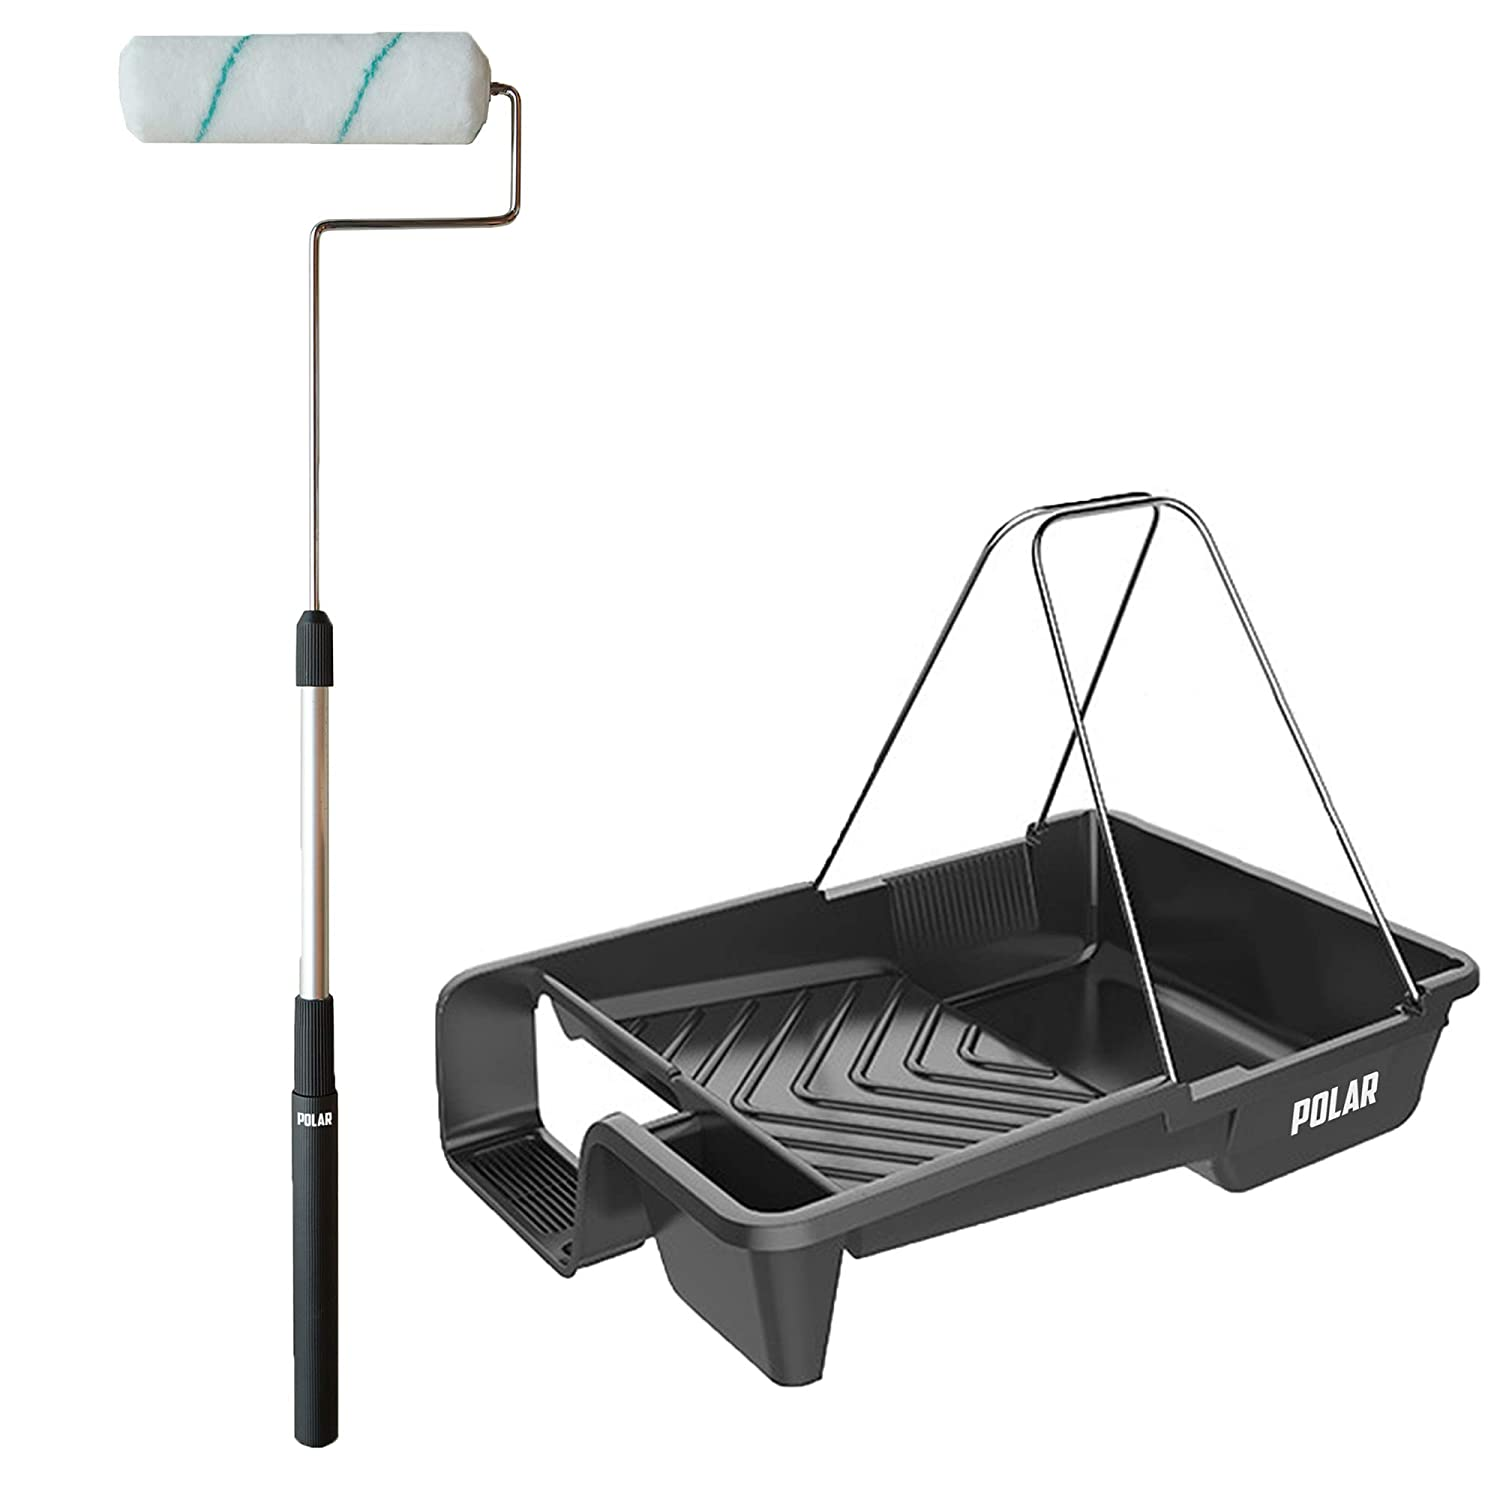 Masonry Walls and Ceilings Polar Premium 9 Paint Roller Set with Extendable Long Roller and Paint Tray with Sturdy Foot Holder and Metal Handle for Painting Floors